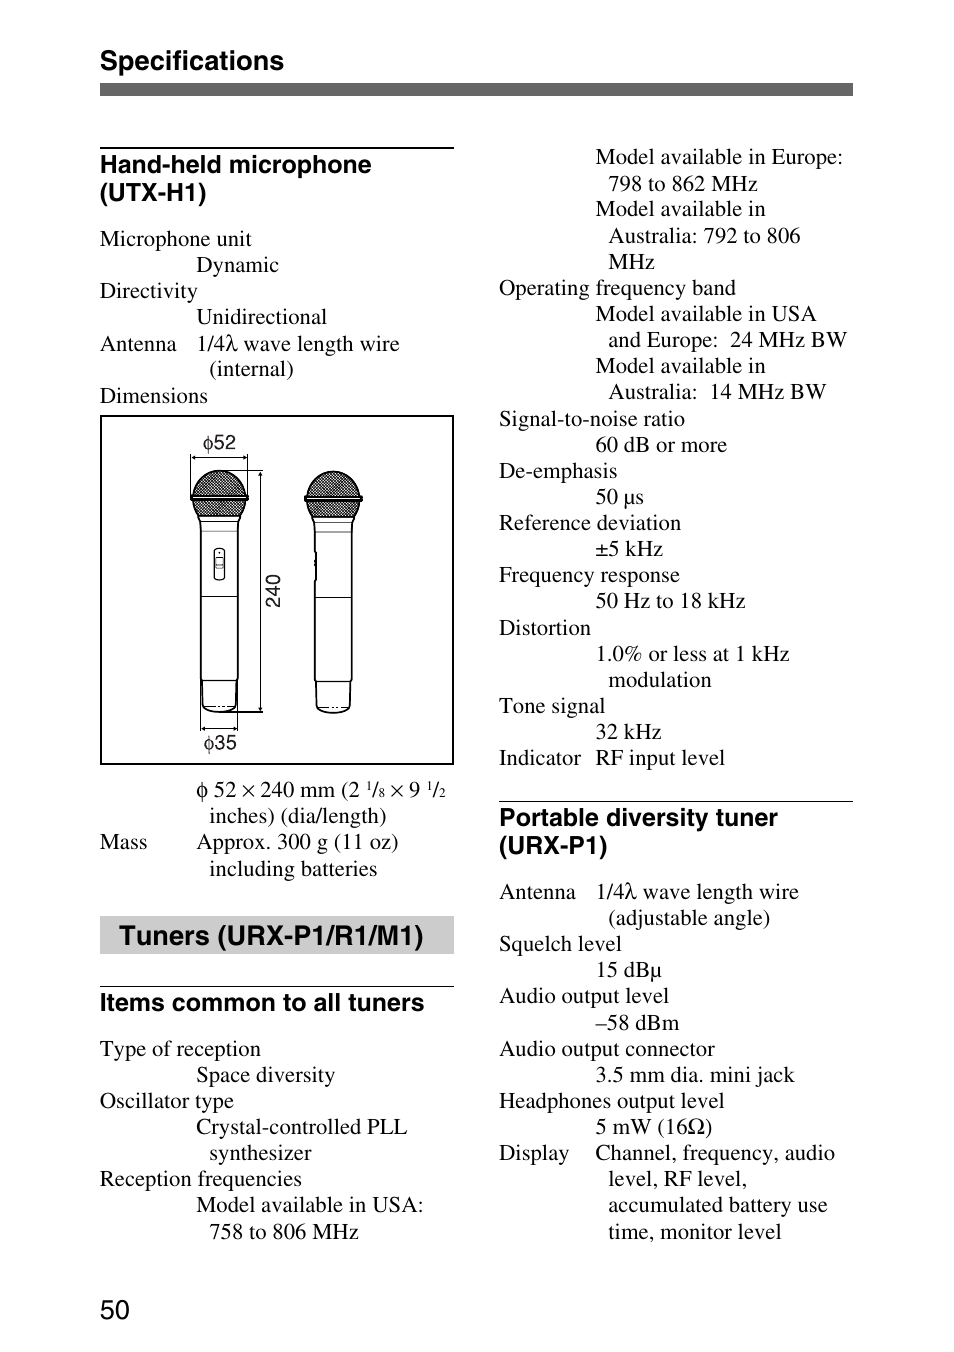 Specifications 50, Tuners (urx-p1/r1/m1) | Sony UPW-C1/C2 User